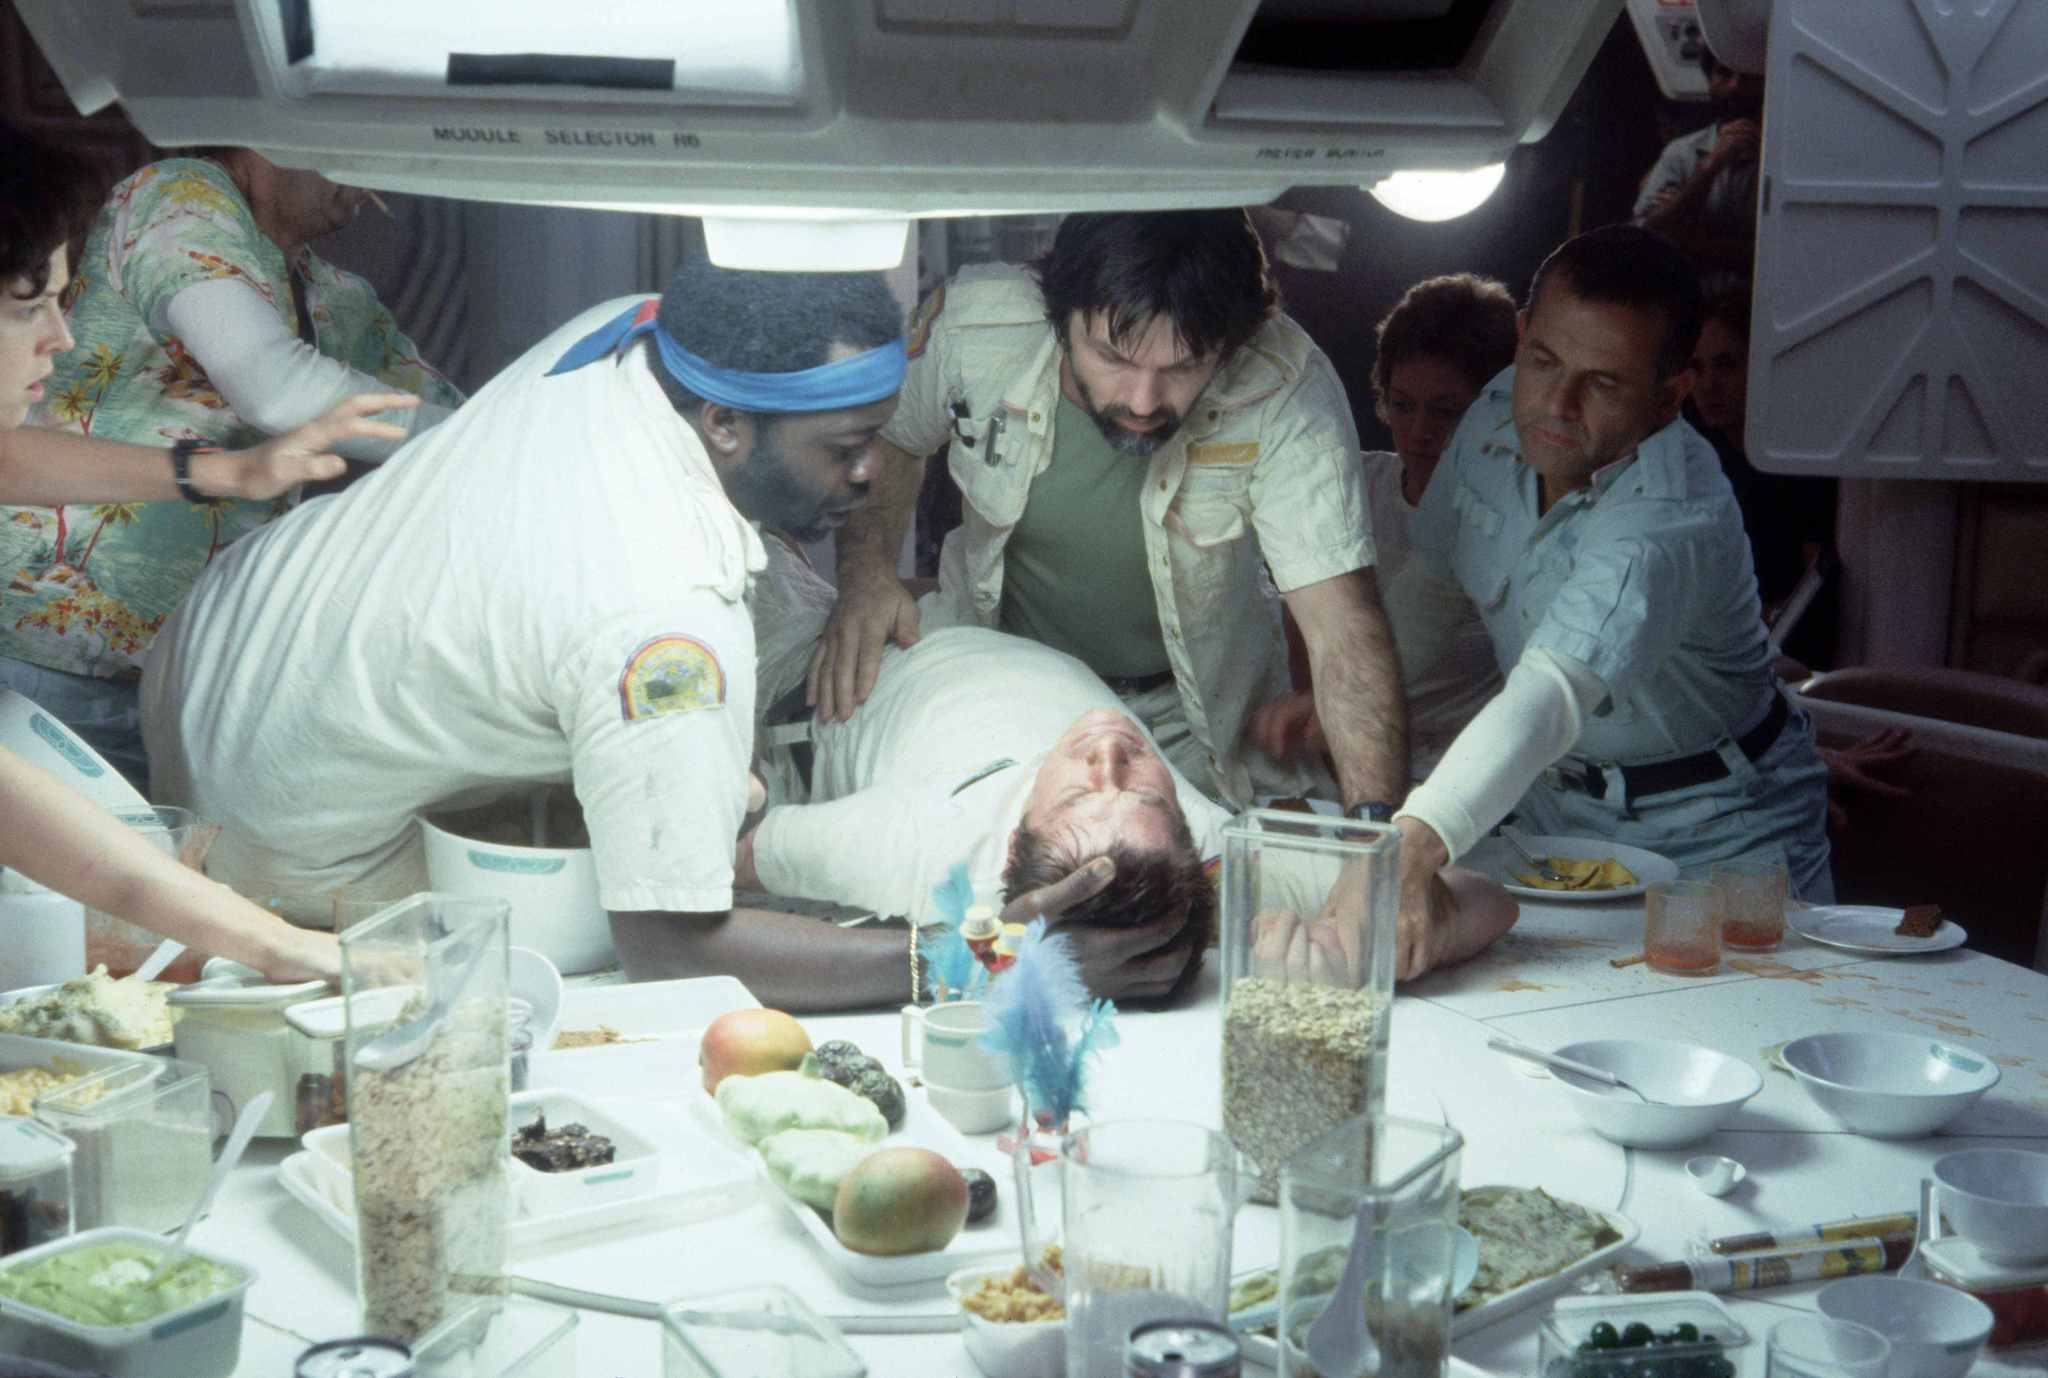 ITV 'being investigated' for showing the famous chestburster scene from Alien after a morning kids' show